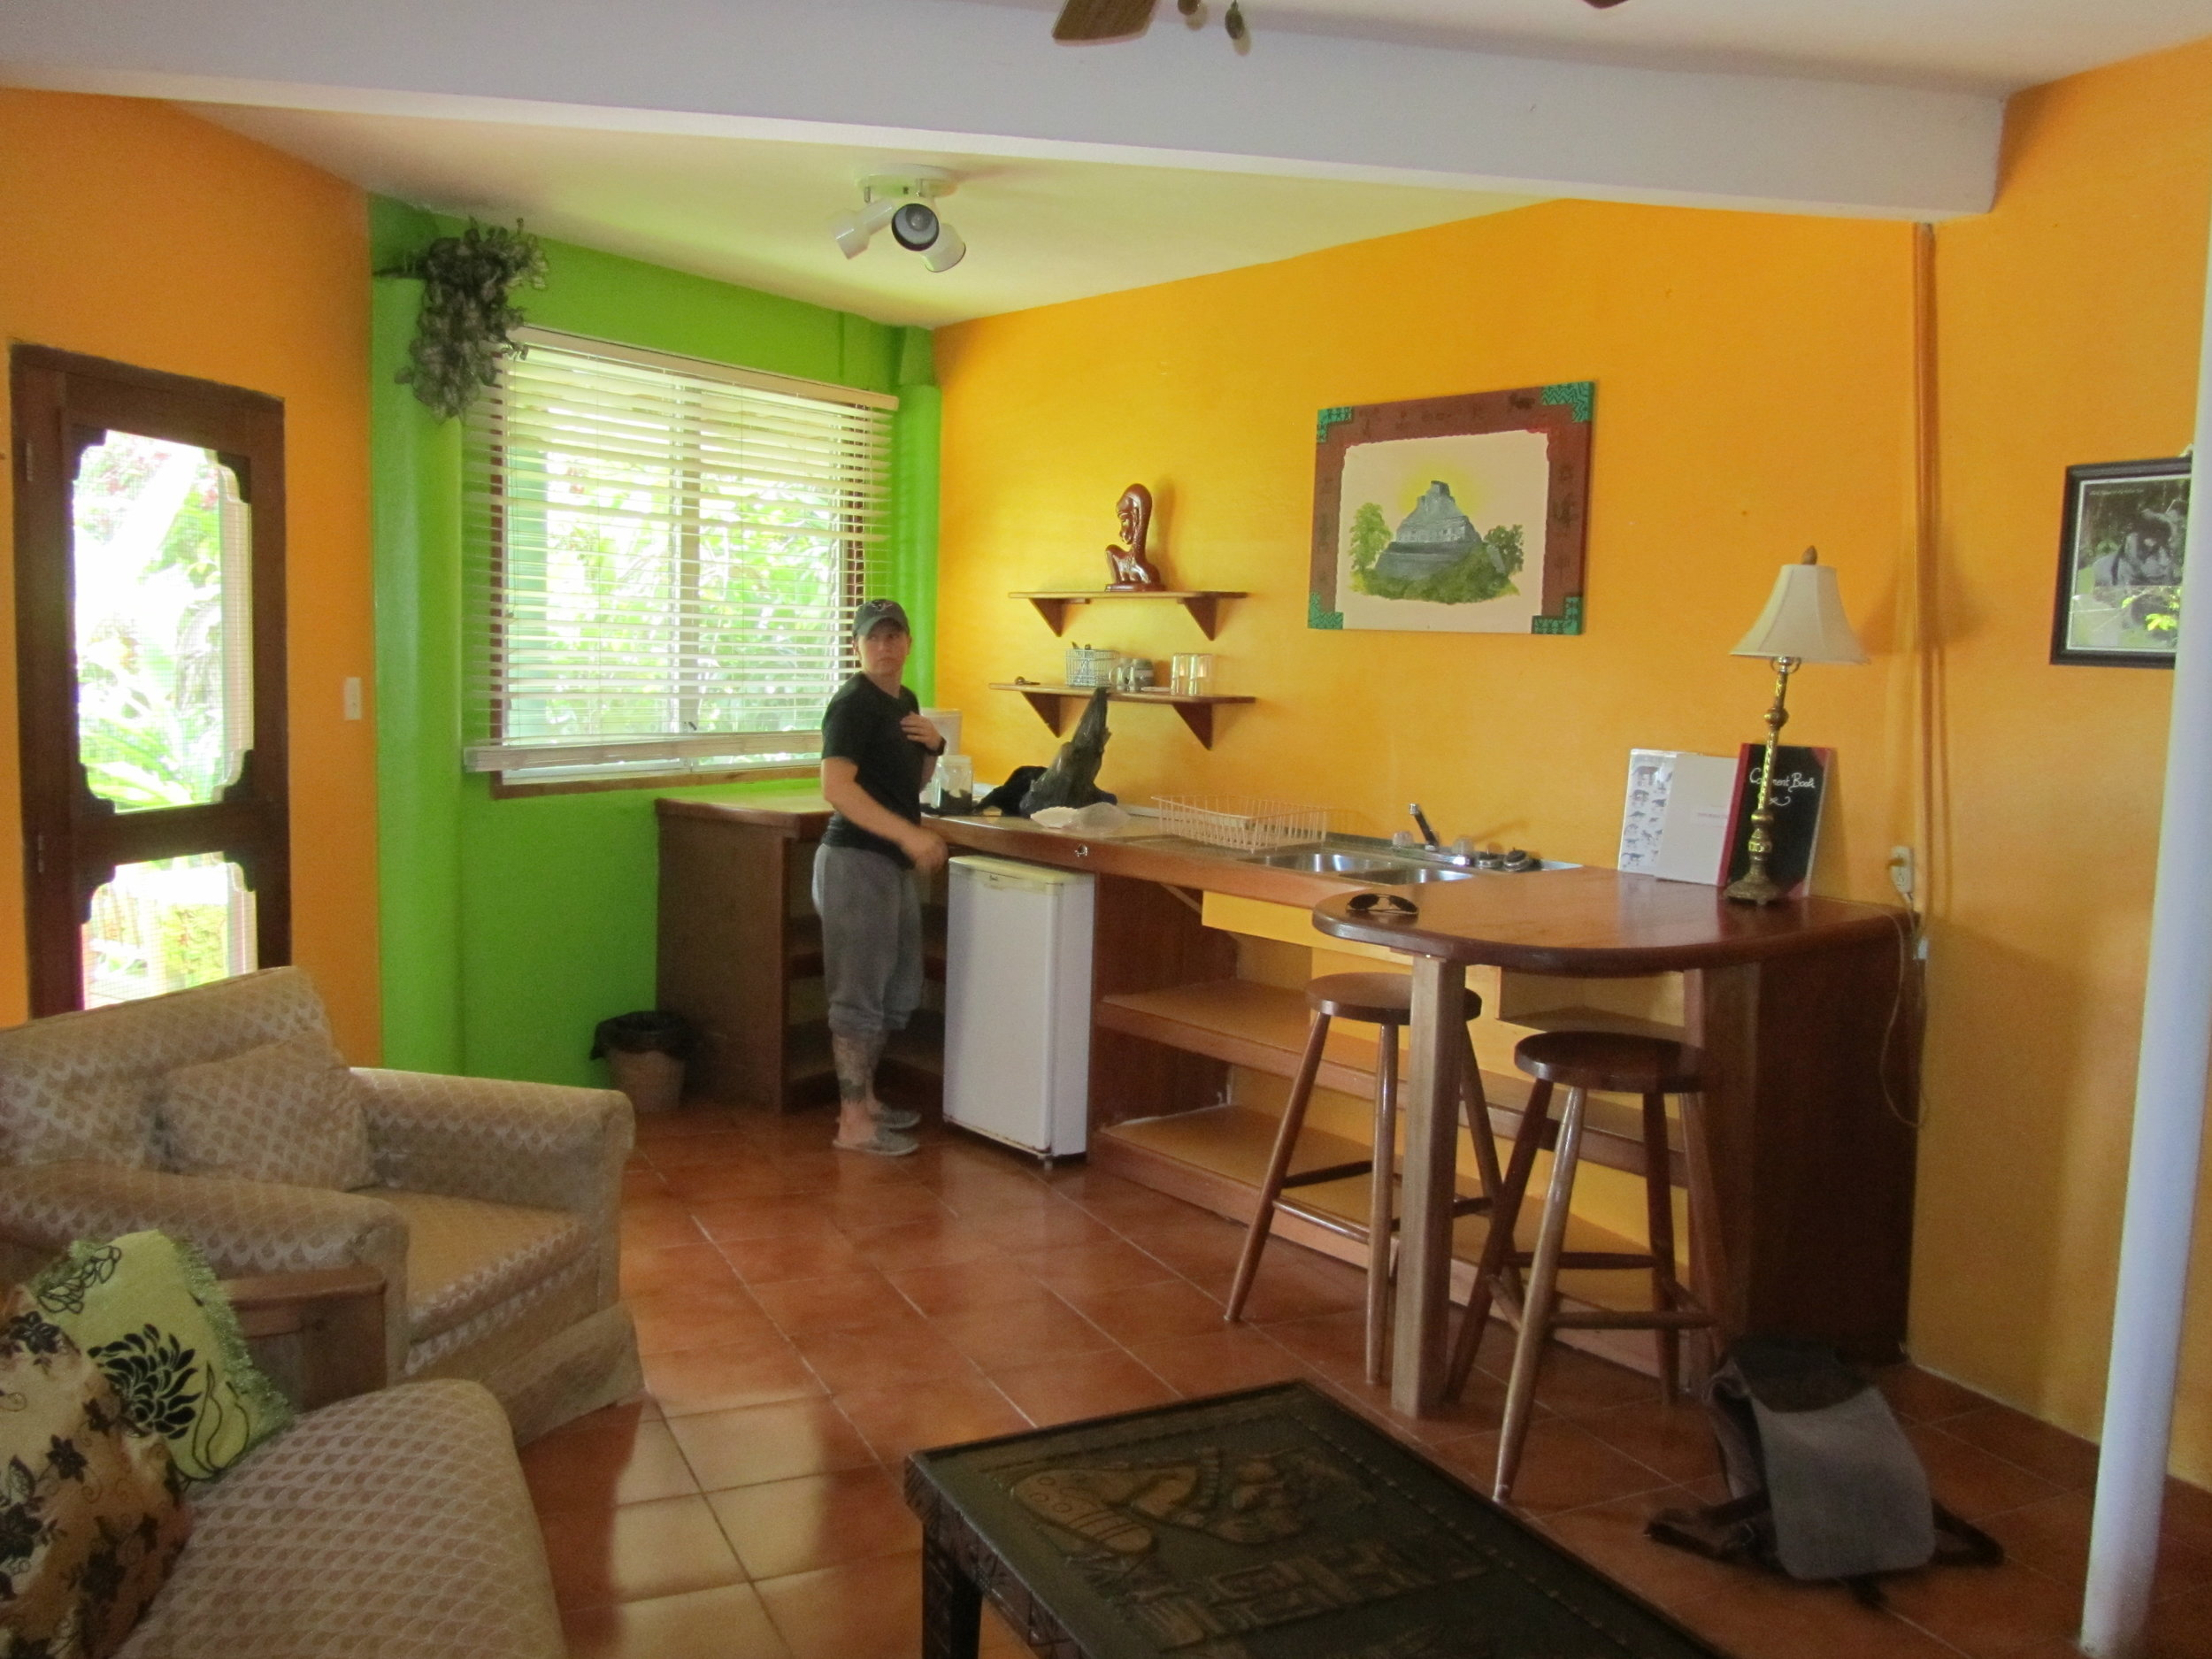 The breakfast area in our room at the Belize Jungle Dome, where I worked during the Cayo District portion of my recent Belize trip. My travel buddy (on the left) helped police me from working too much. December 2012.